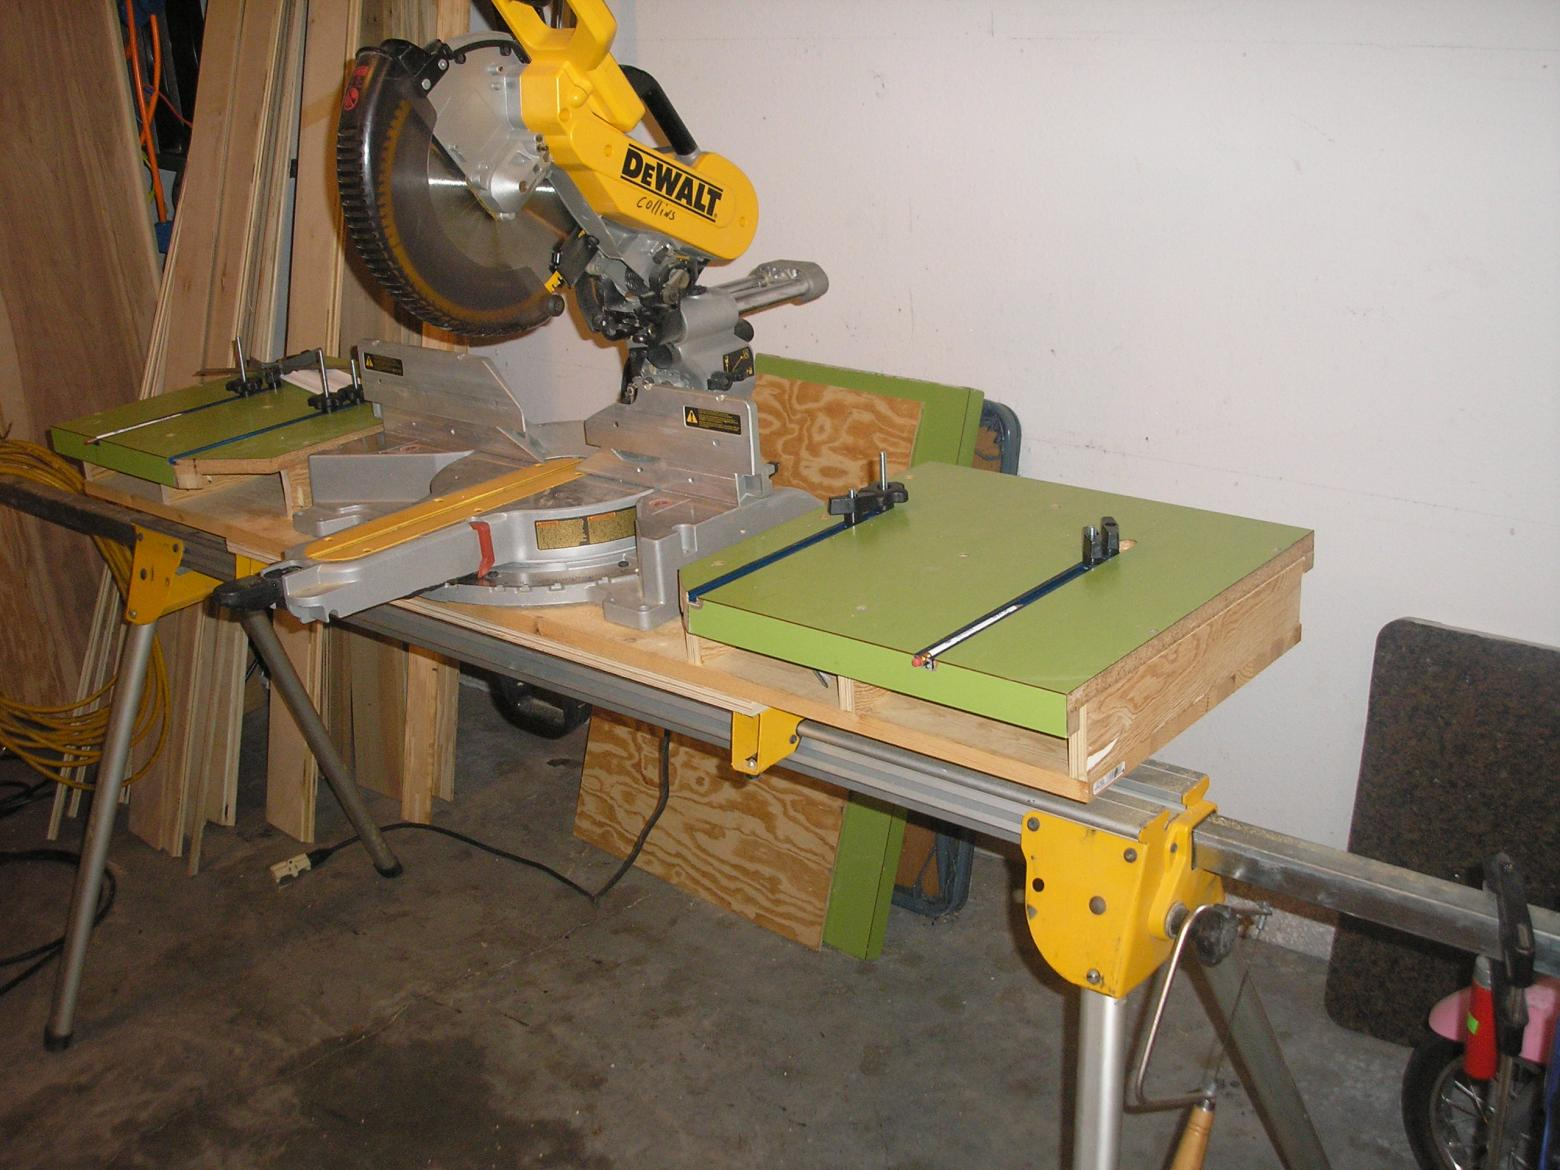 Miter Saw Bench Tools Amp Equipment Contractor Talk